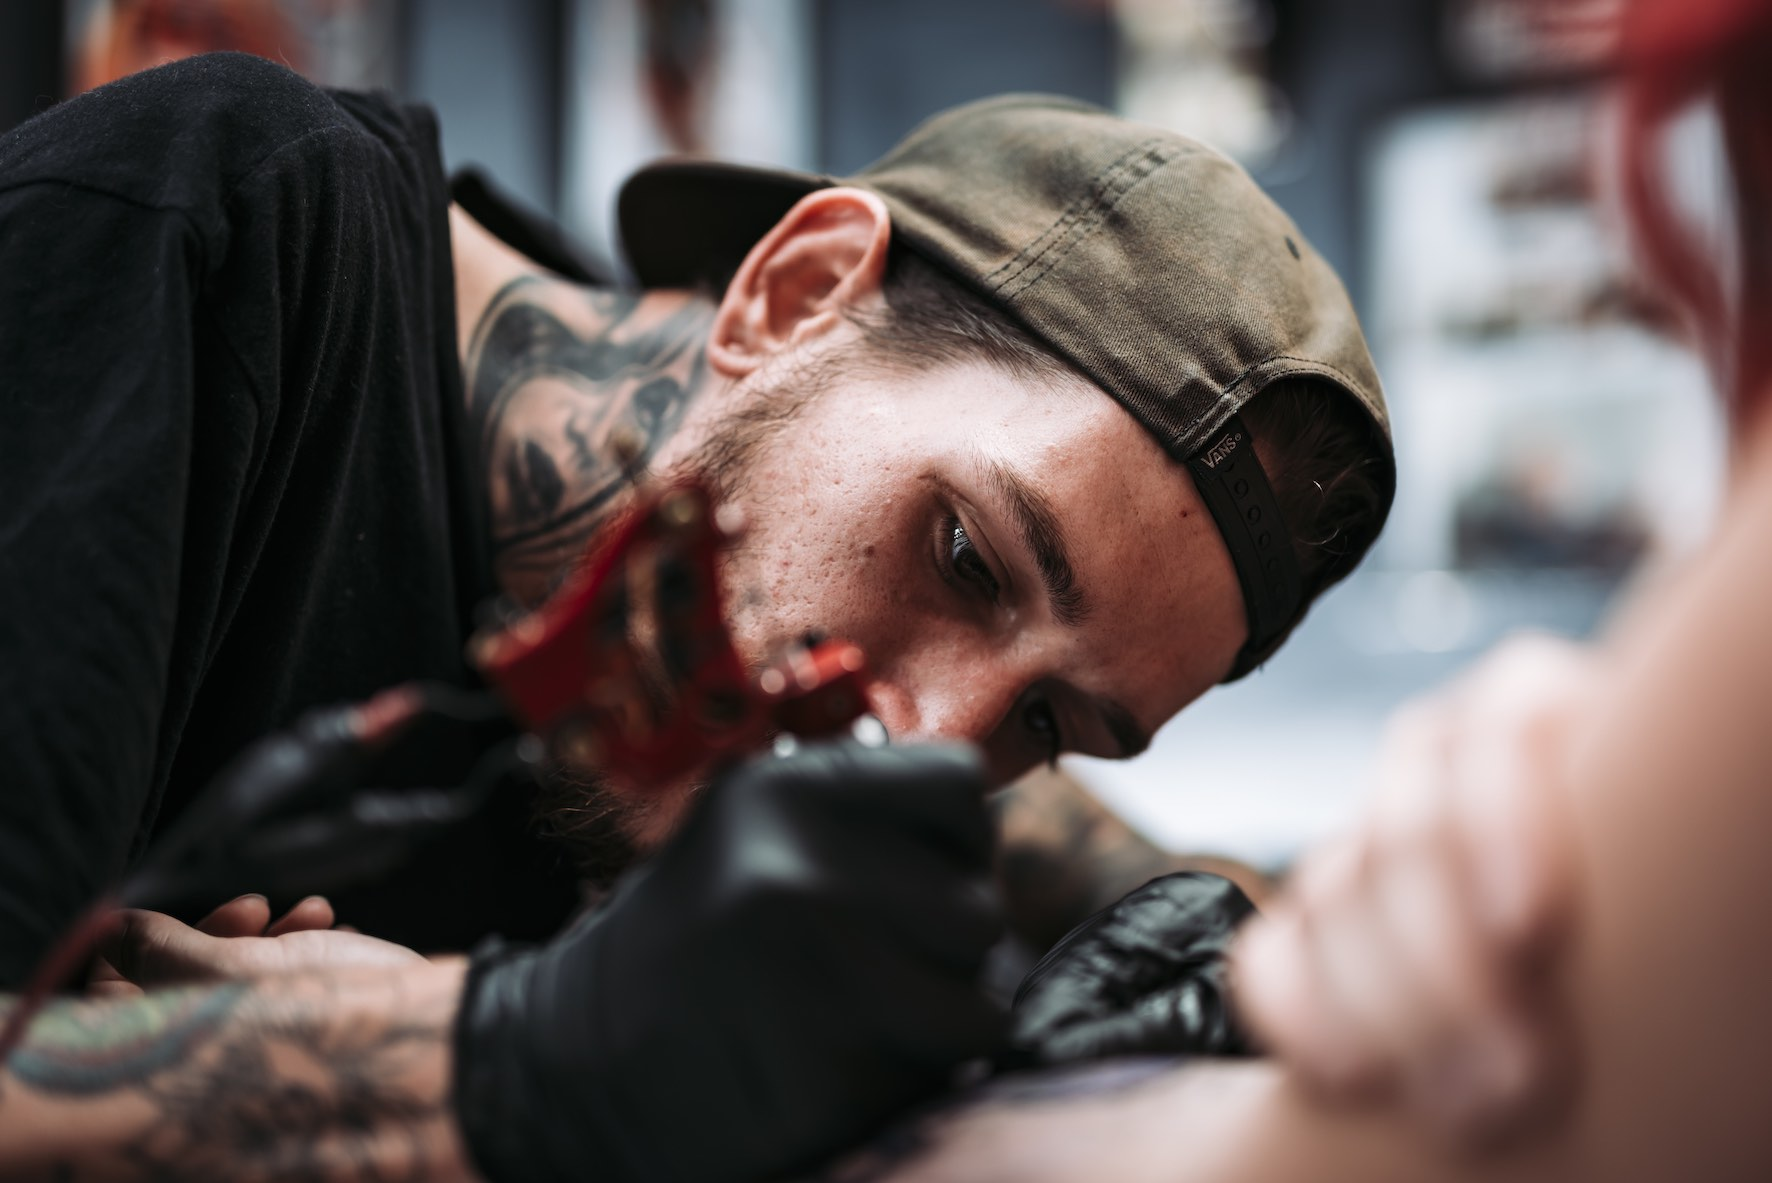 Daniel Skye Forster talks tattoos and more in our featured Tattoo Artist interview